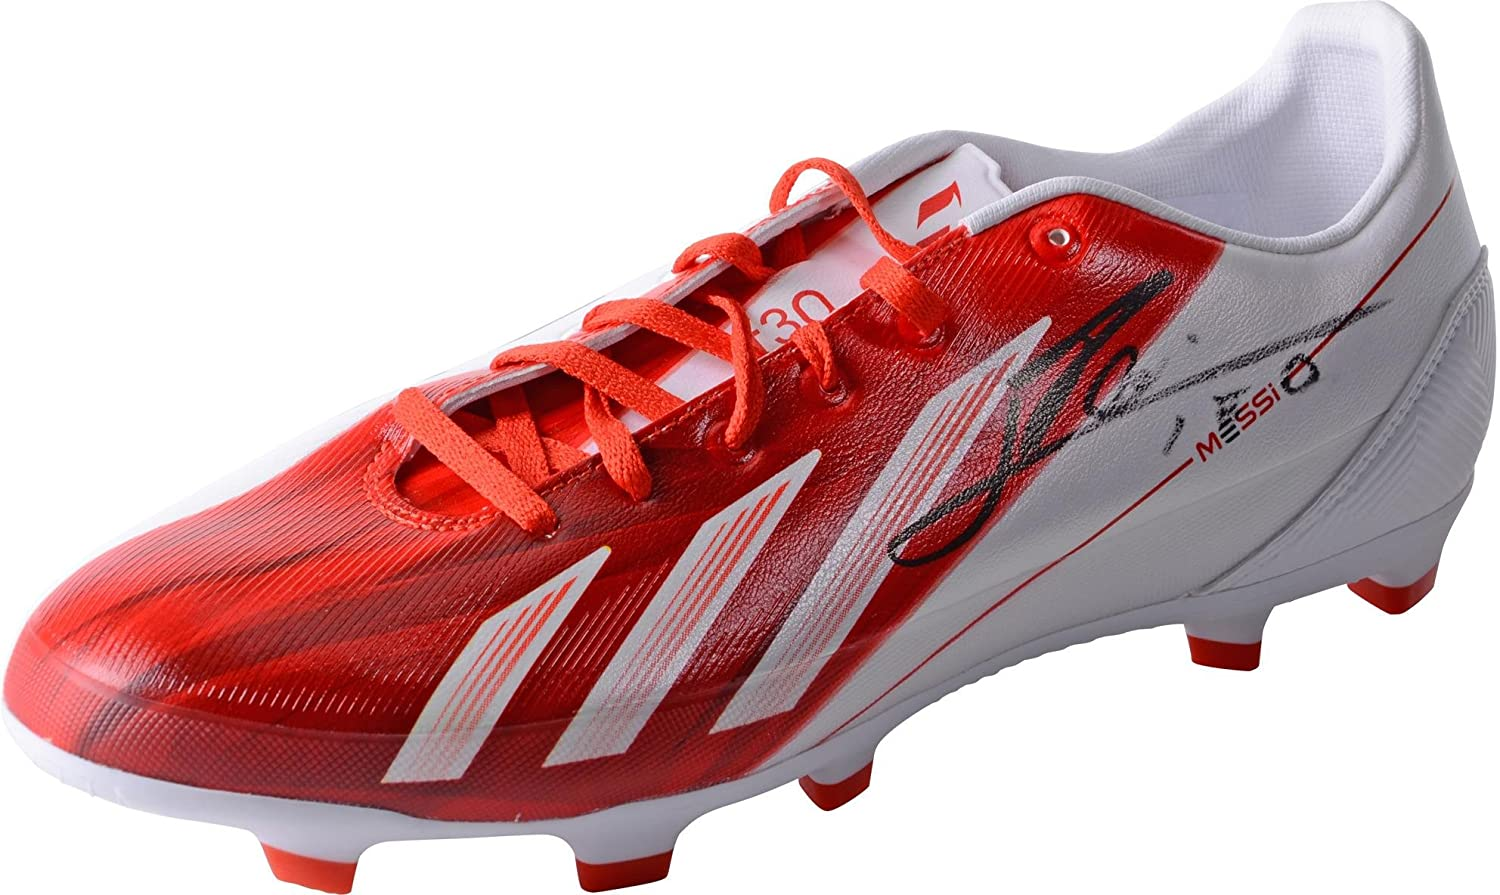 Lionel Messi Autographed adidas Boot